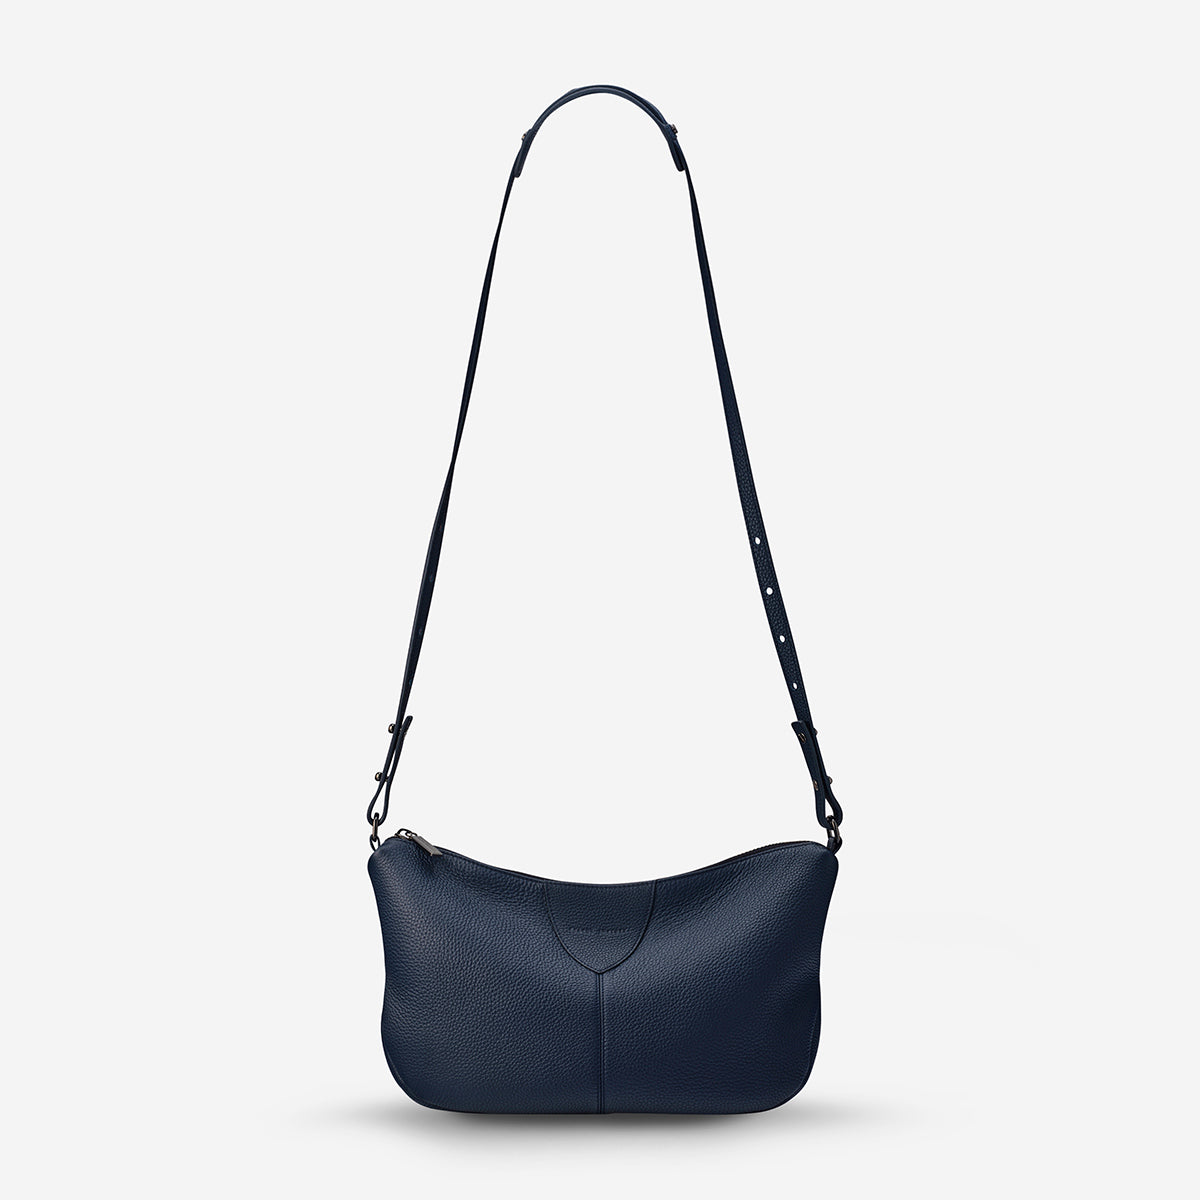 Status Anxiety At A Loss Women's Leather Crossbody Slouch Bag - Navy Blue